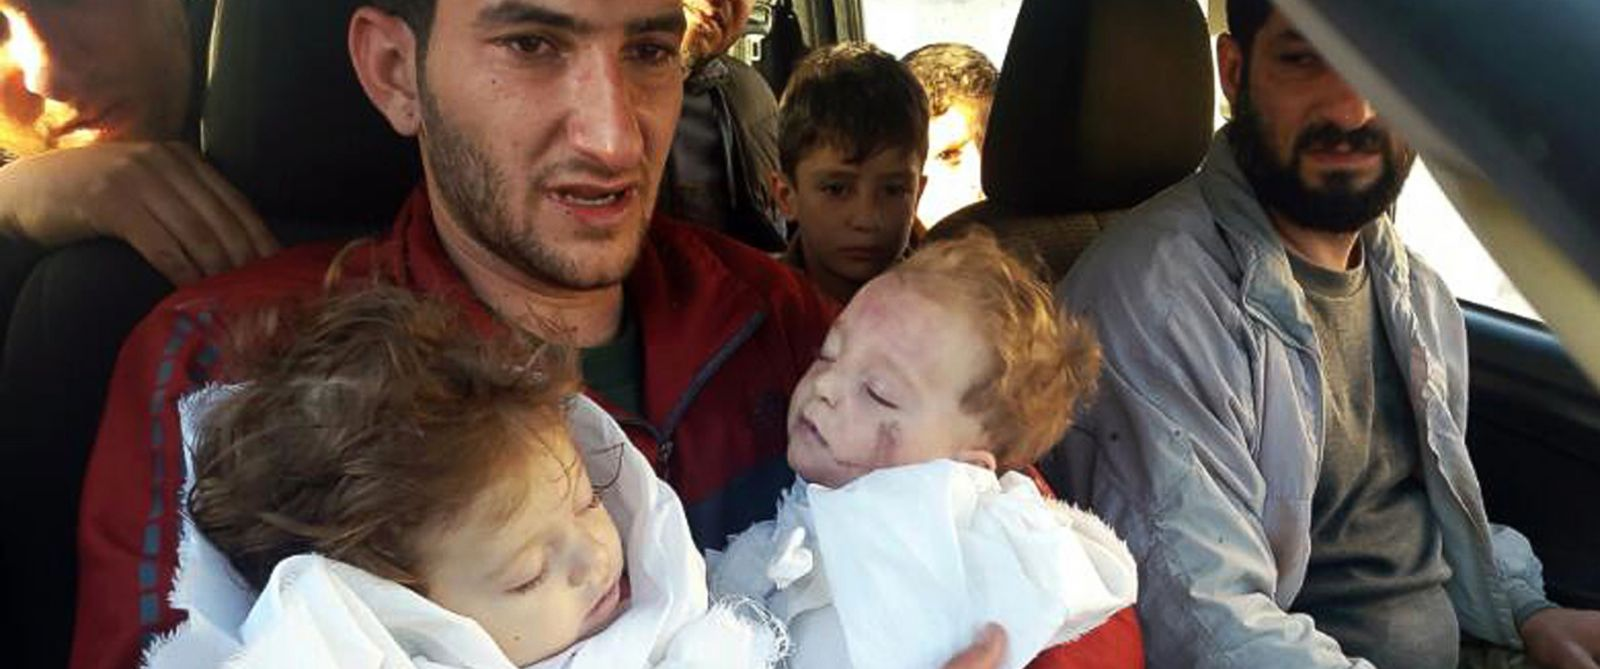 PHOTO: In this picture taken on Tuesday April 4, 2017, SAbdul-Hamid Alyousef, 29, holds his twin babies who were killed during a suspected chemical weapons attack, in Khan Sheikhoun in the northern province of Idlib, Syria.